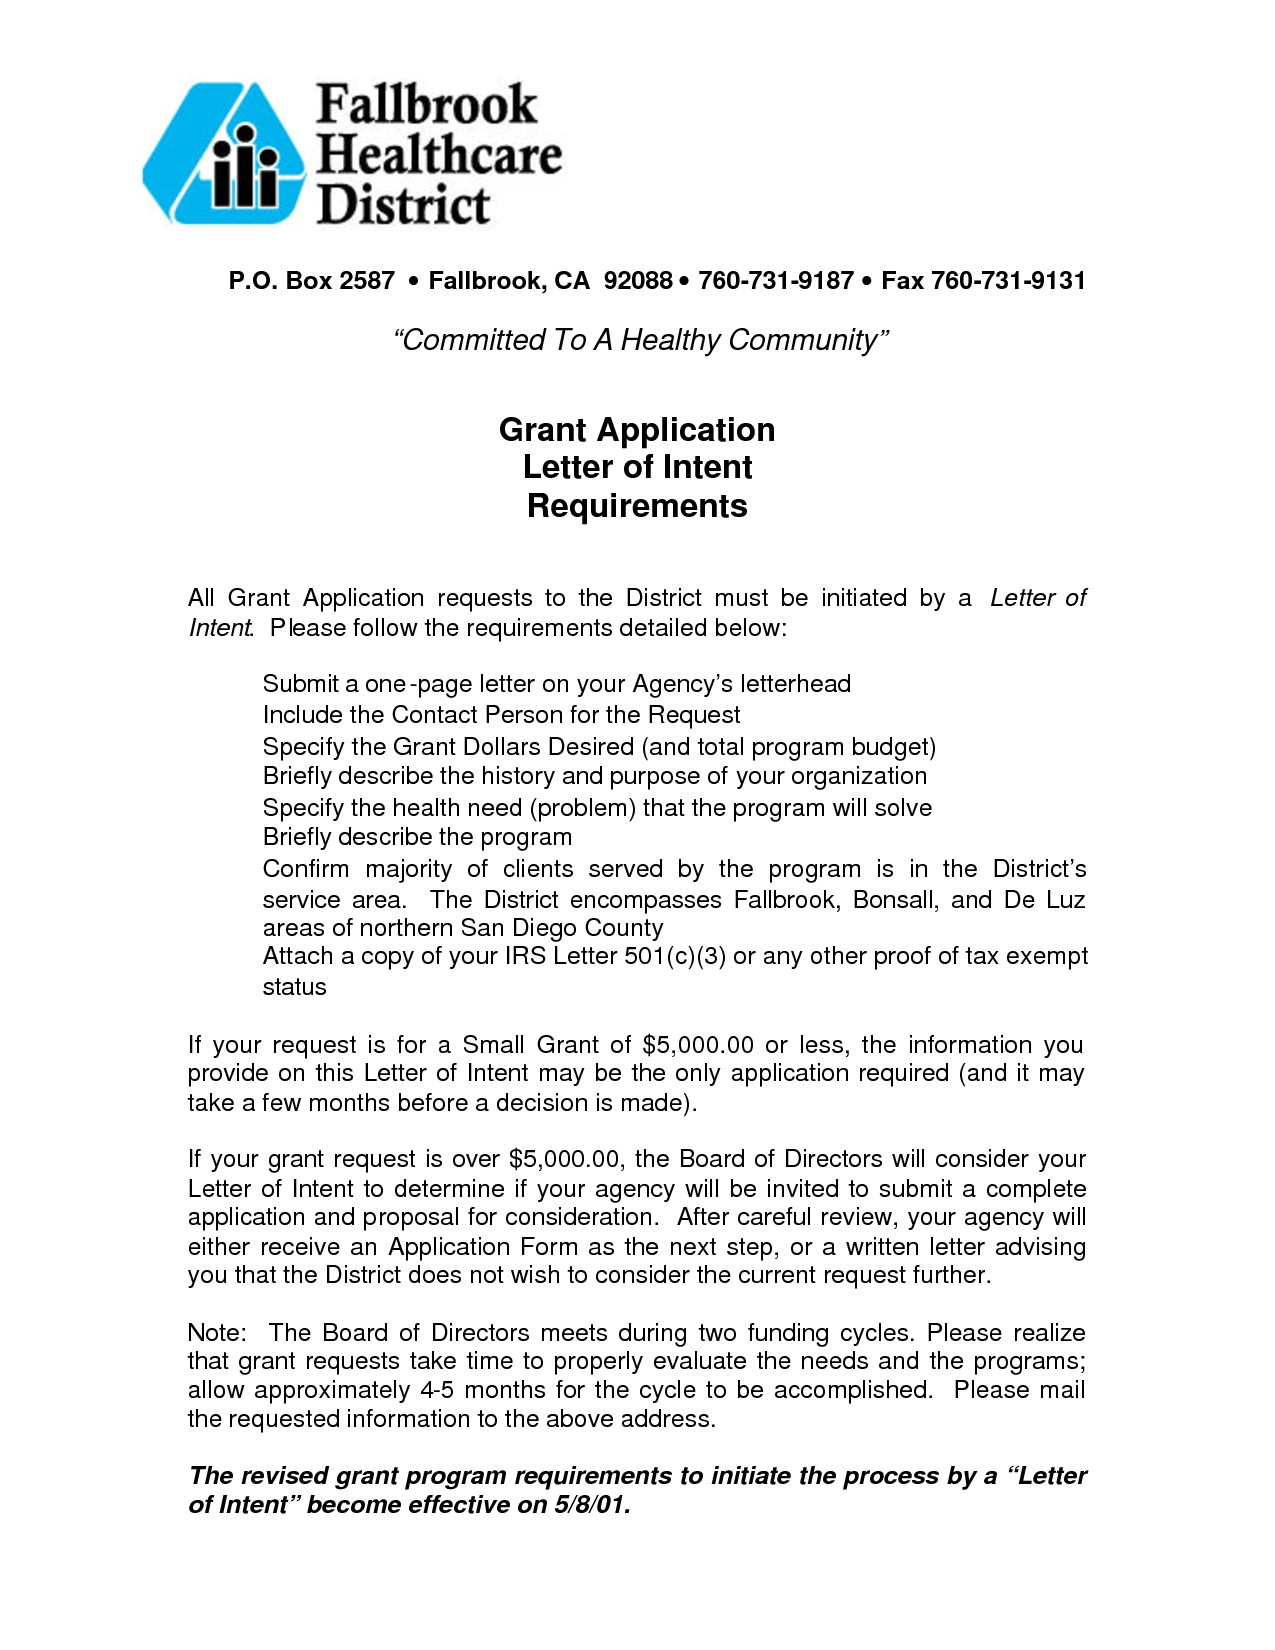 Grant Request Letter Template - How to A Free Covering Letter for Visa Application Letter Of